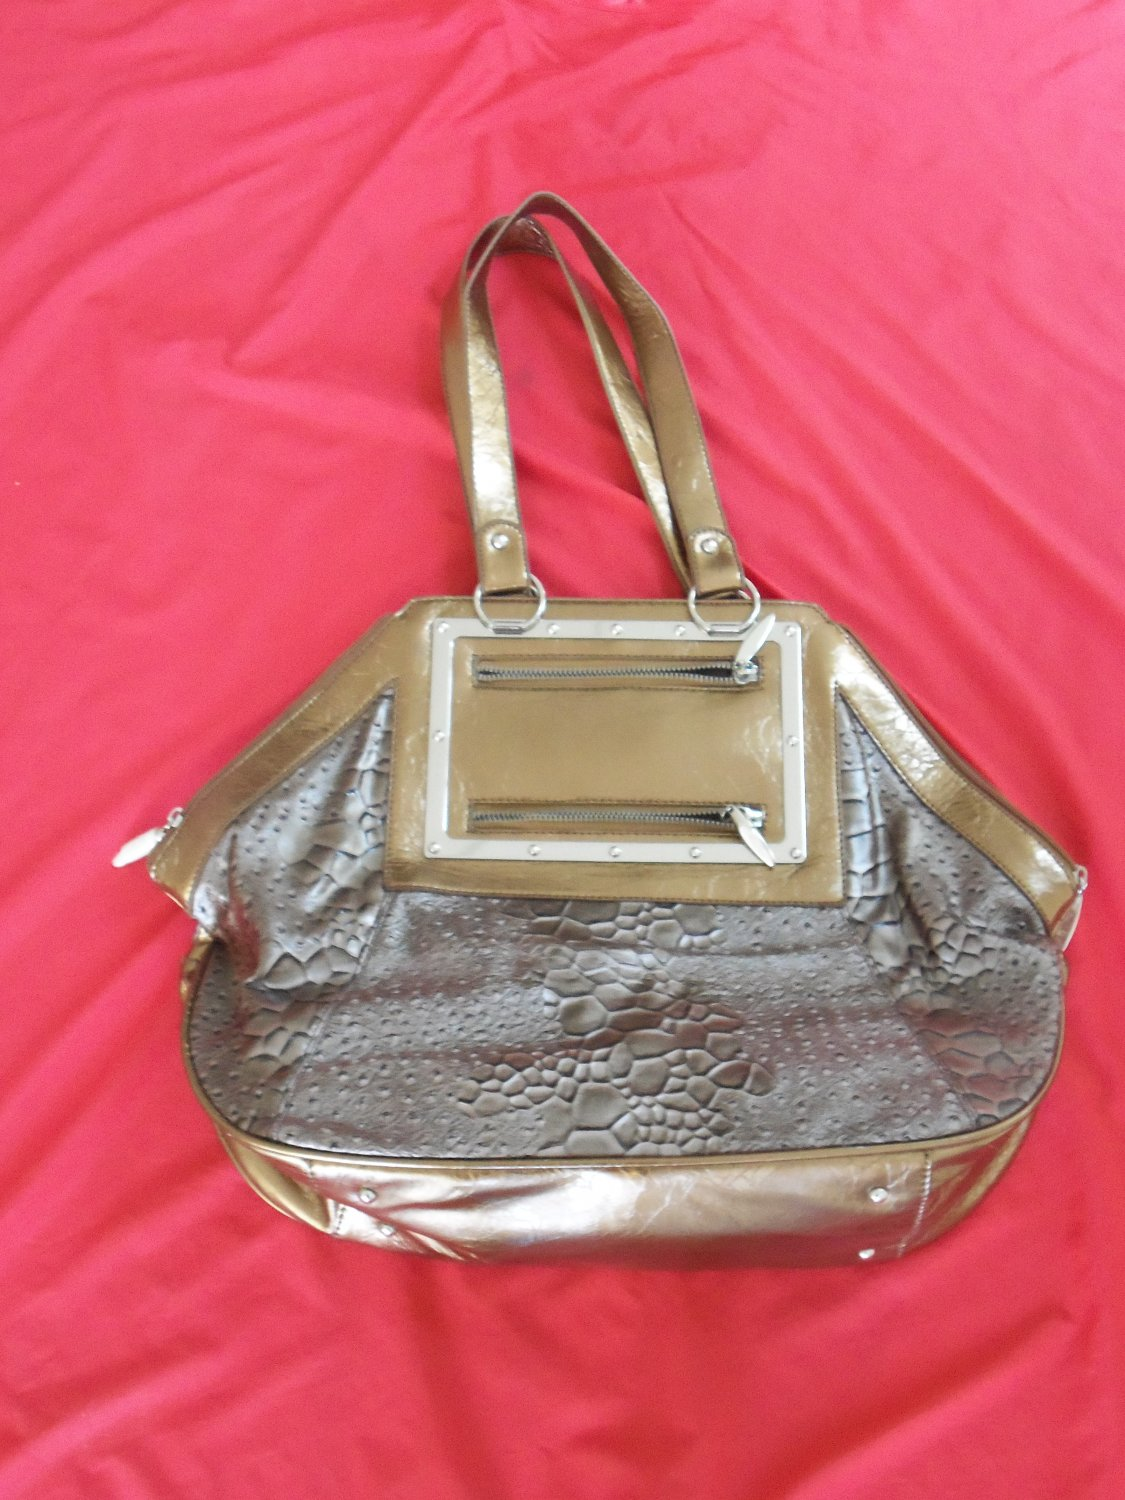 Latest Las Vegas Glitzy Purse